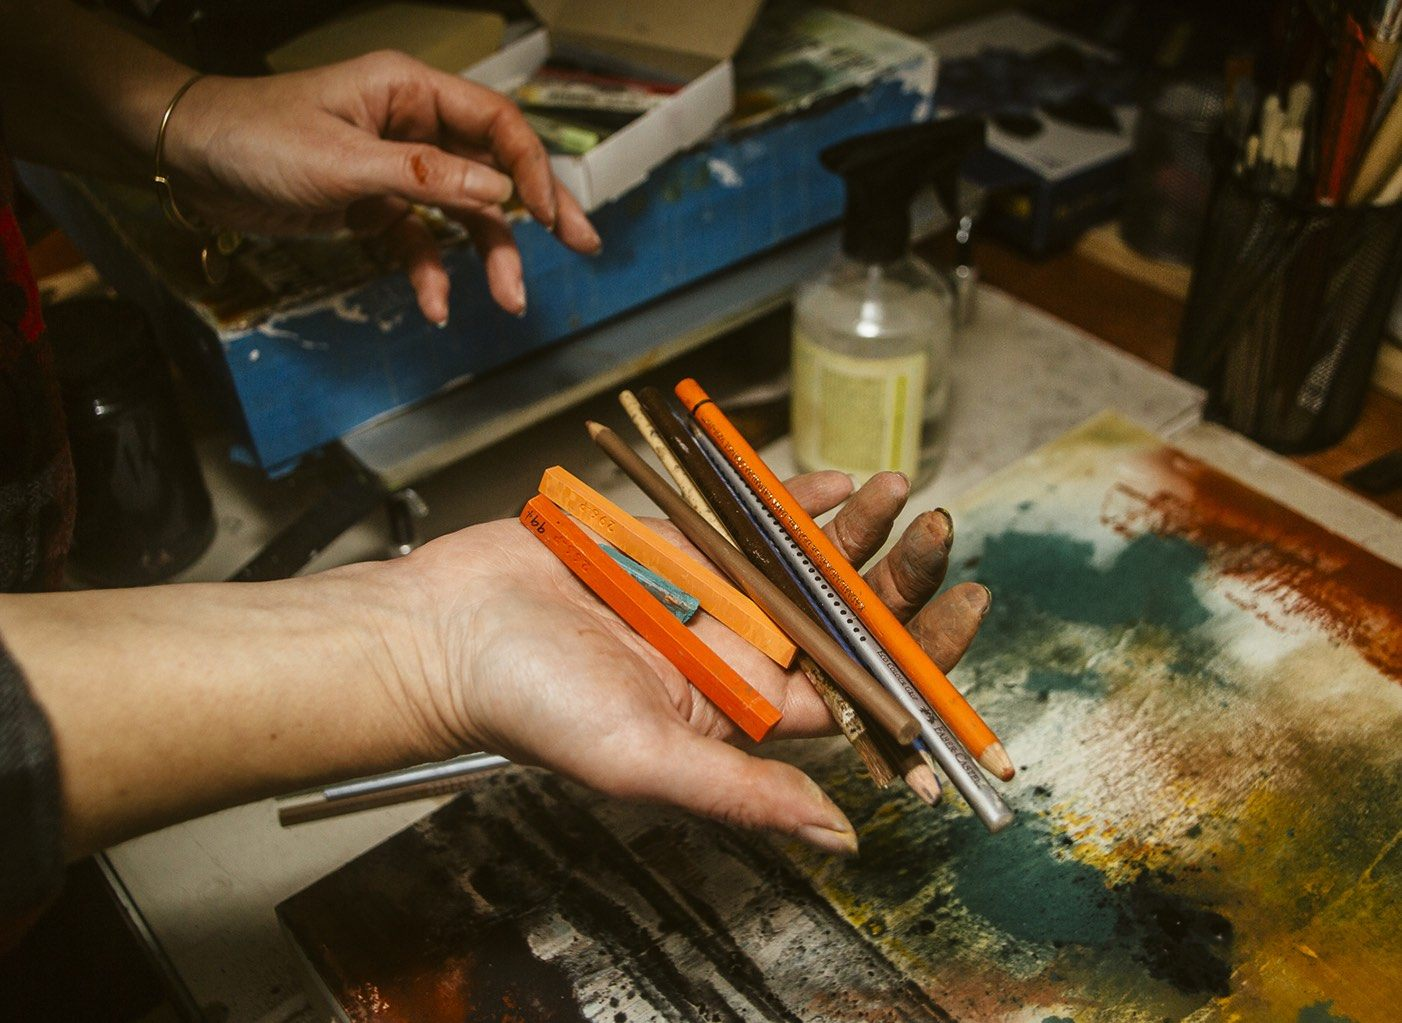 an artist holding pencils, crayons and other art-making implements